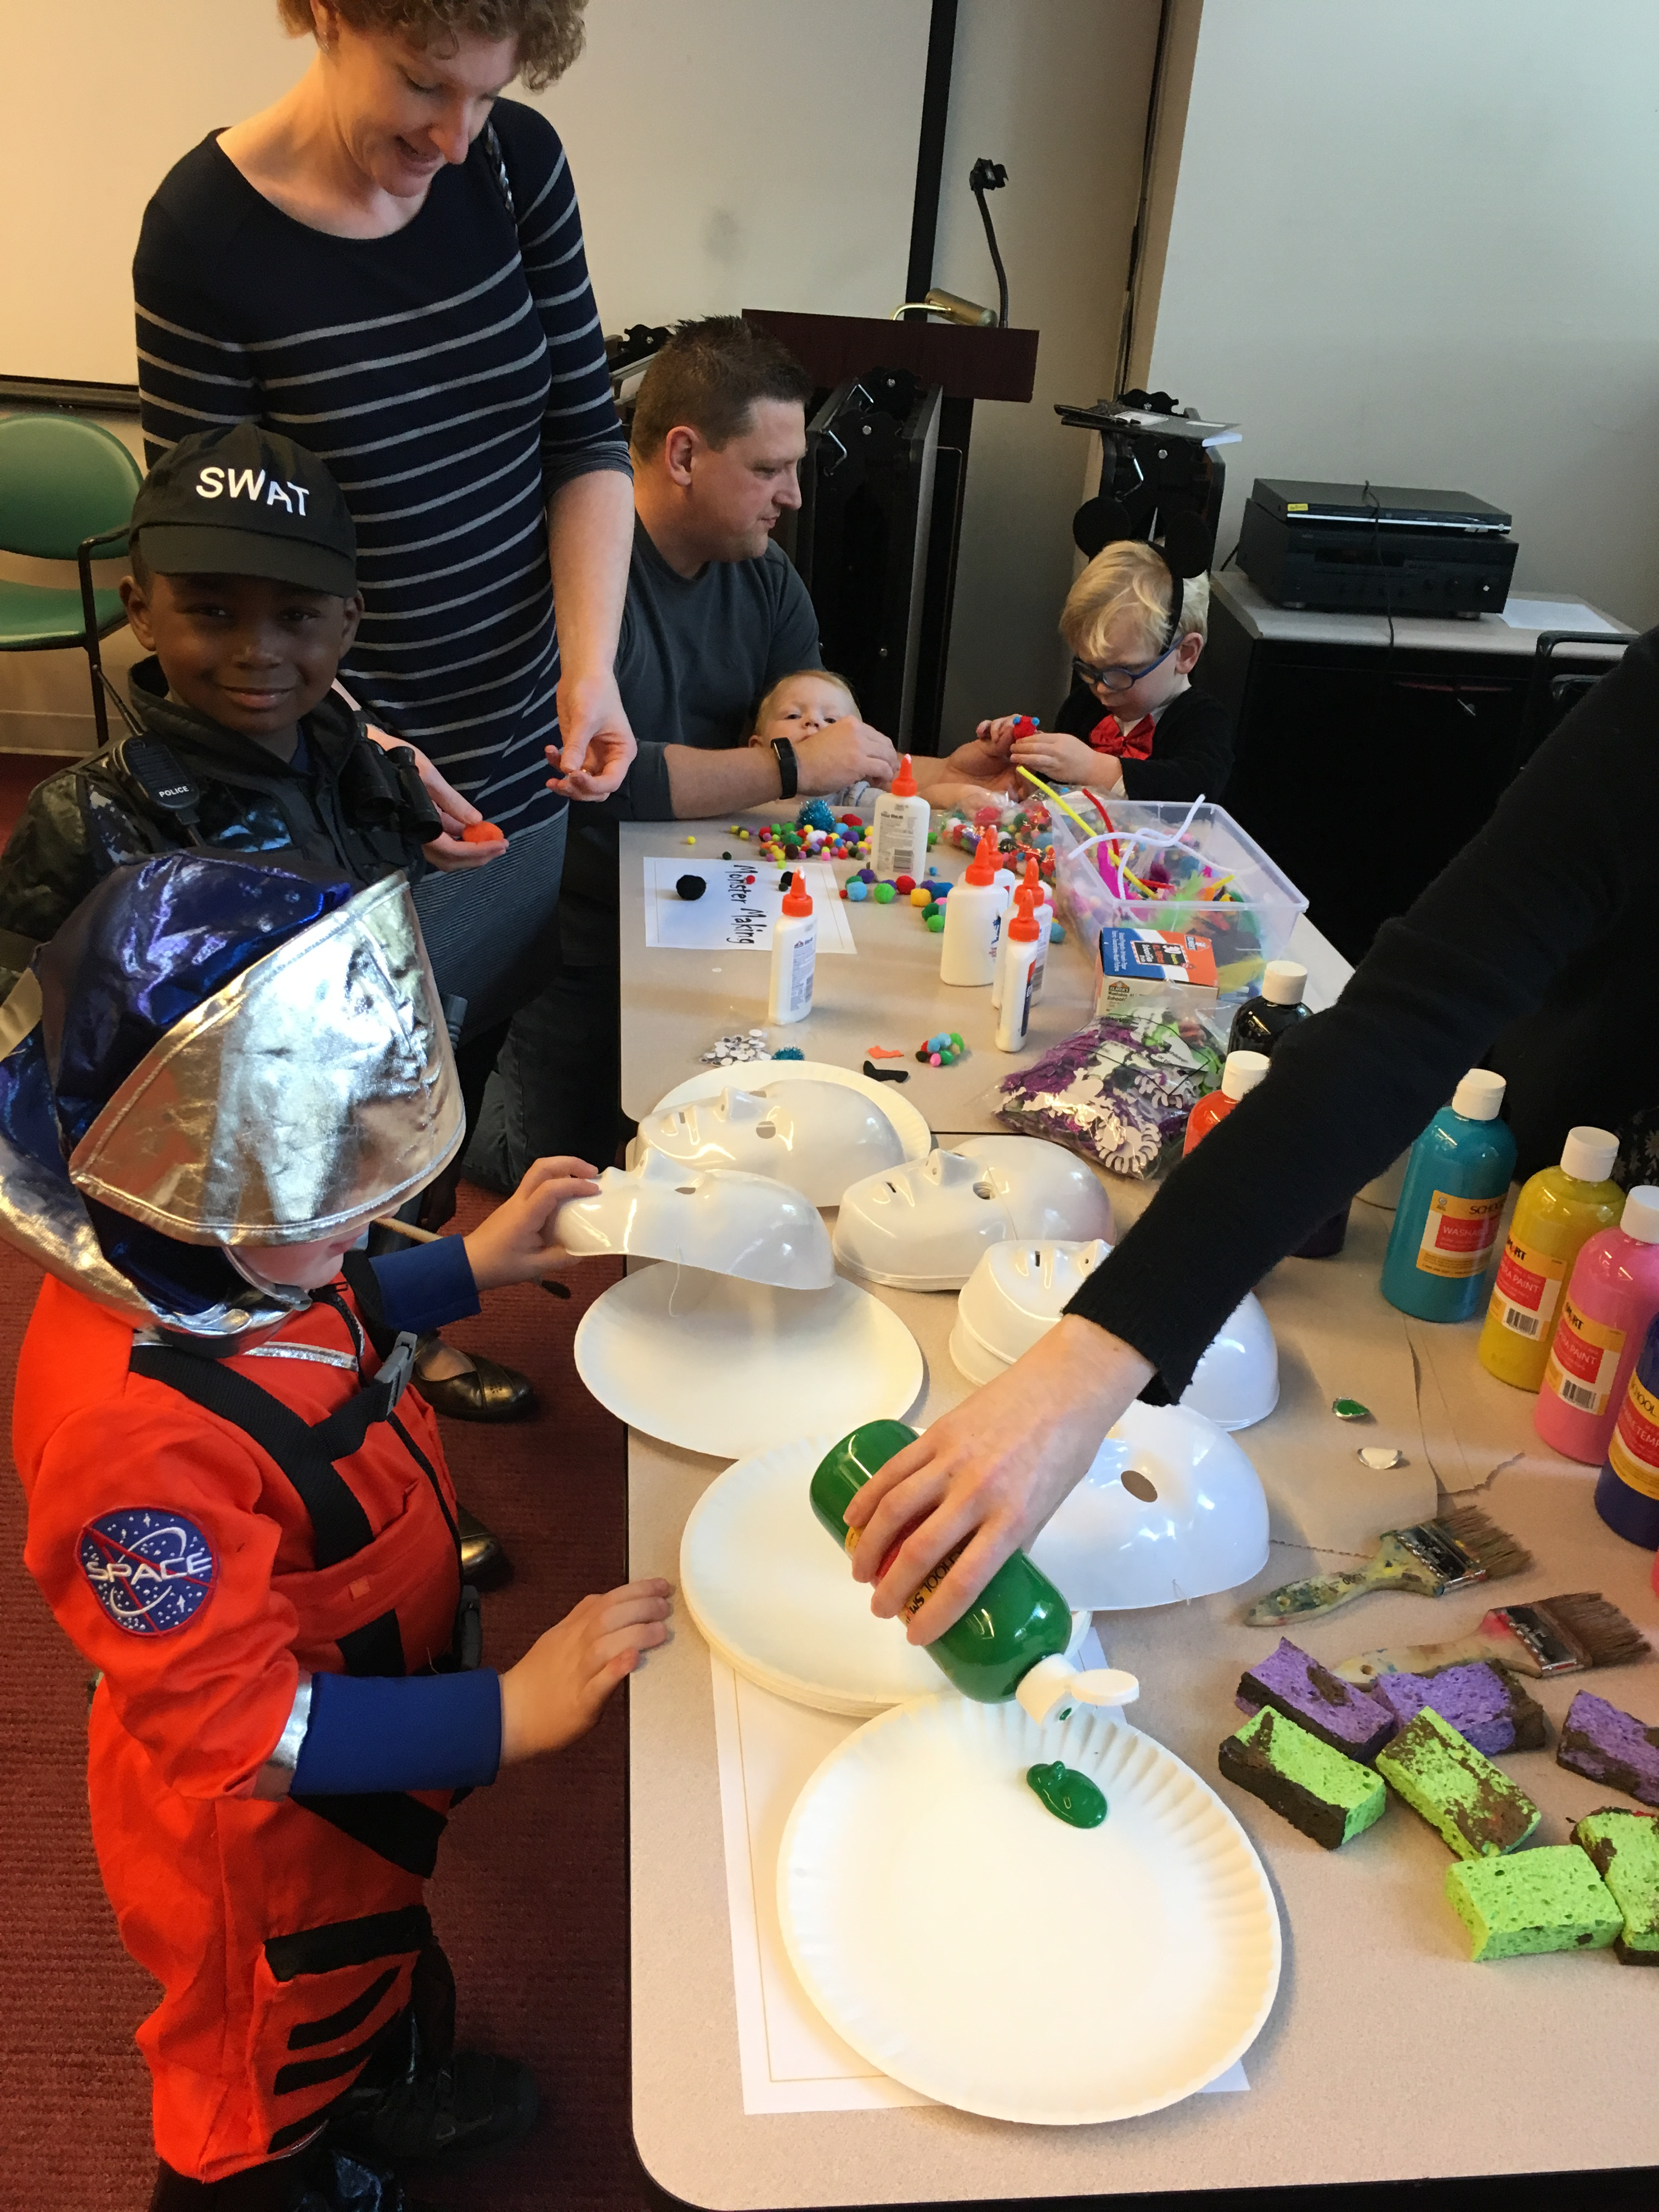 A group of children in costumes (astronaut, police man, Mickey Mouse) paint masks at a craft table.